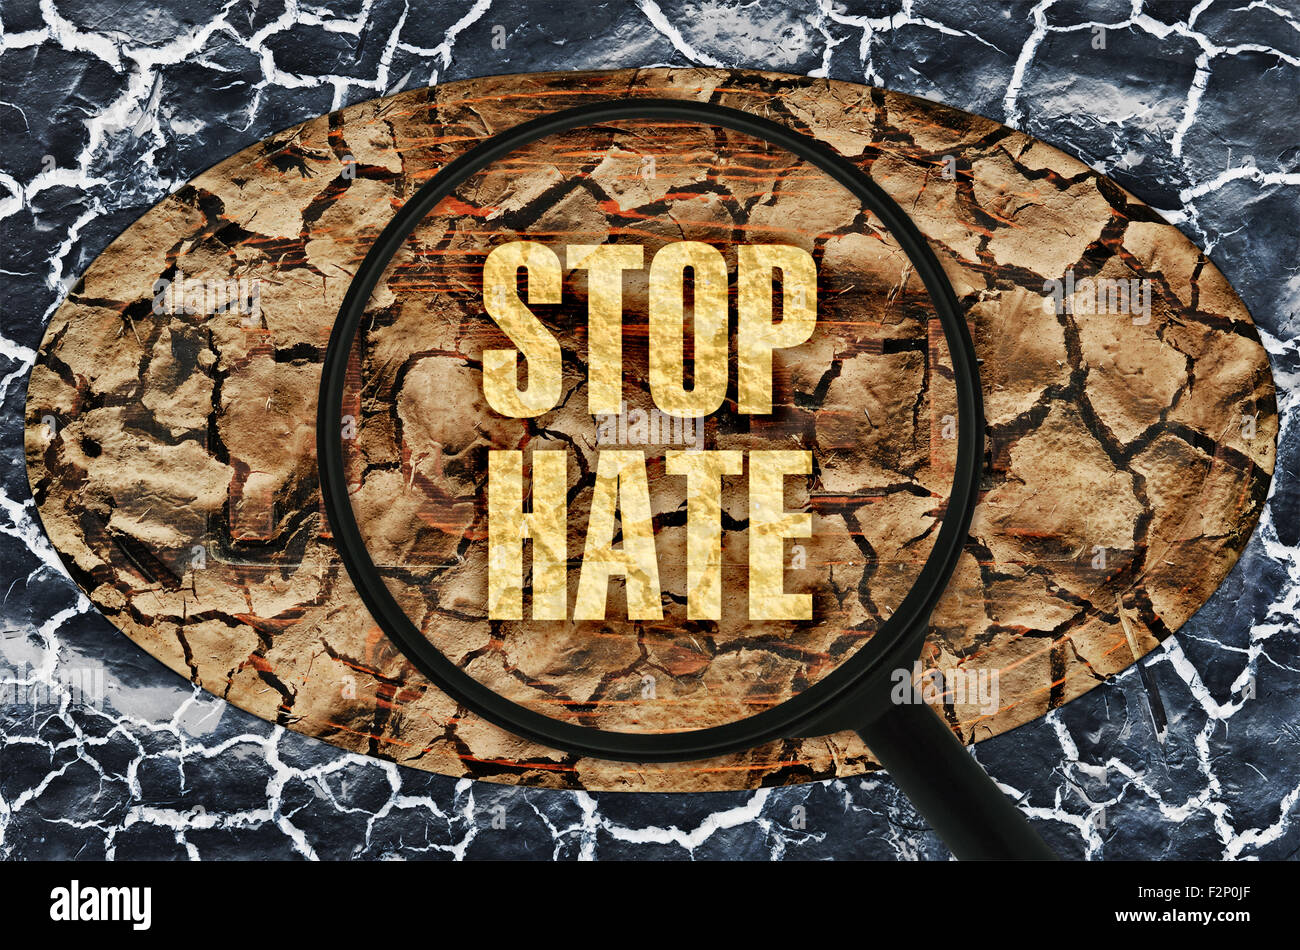 Text Stop Hate under a magnifier on abstract background - Stock Image